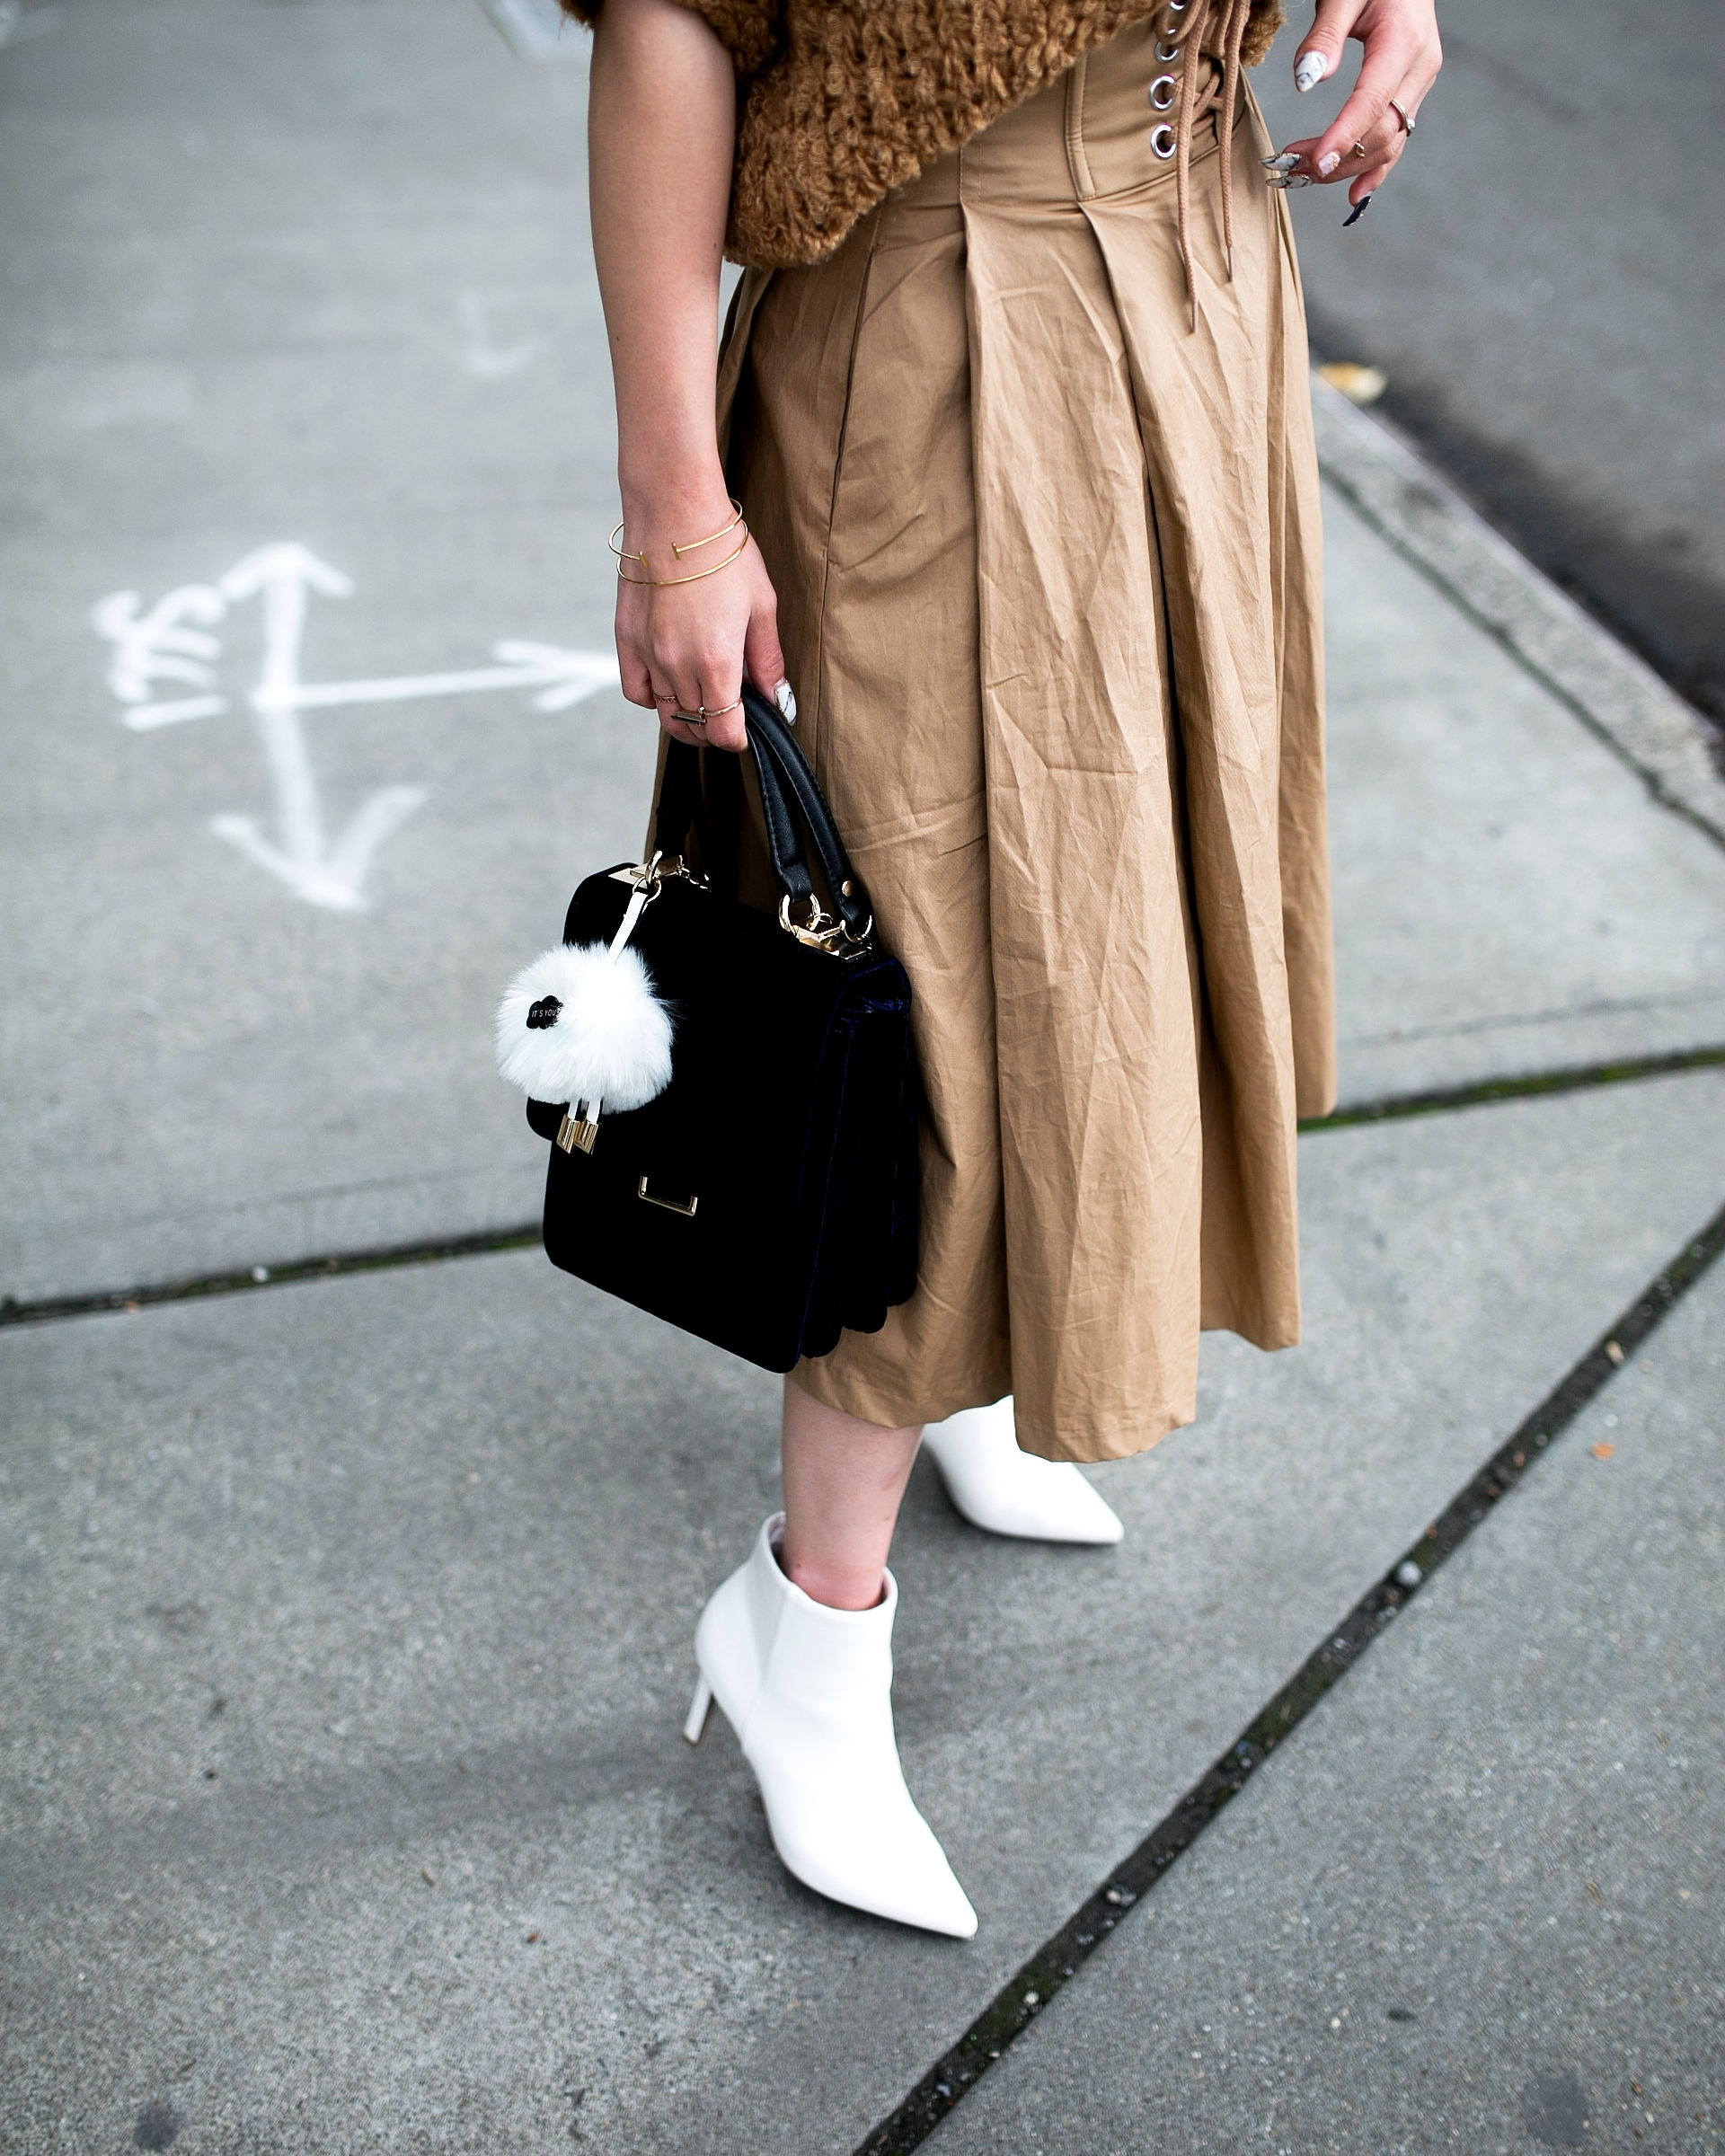 Forever 21 Fluffy White Beret, Express Pearl Collar Necklace, Thrifted Teddy Camel Top, H&M High-waisted camel midi skirt, zara velvet bag, Forever 21 White Ankle Boots, Aika's Love Closet, Seattle Fashion Style Blogger, Japanese, pink hair, street style, petite fashion  4